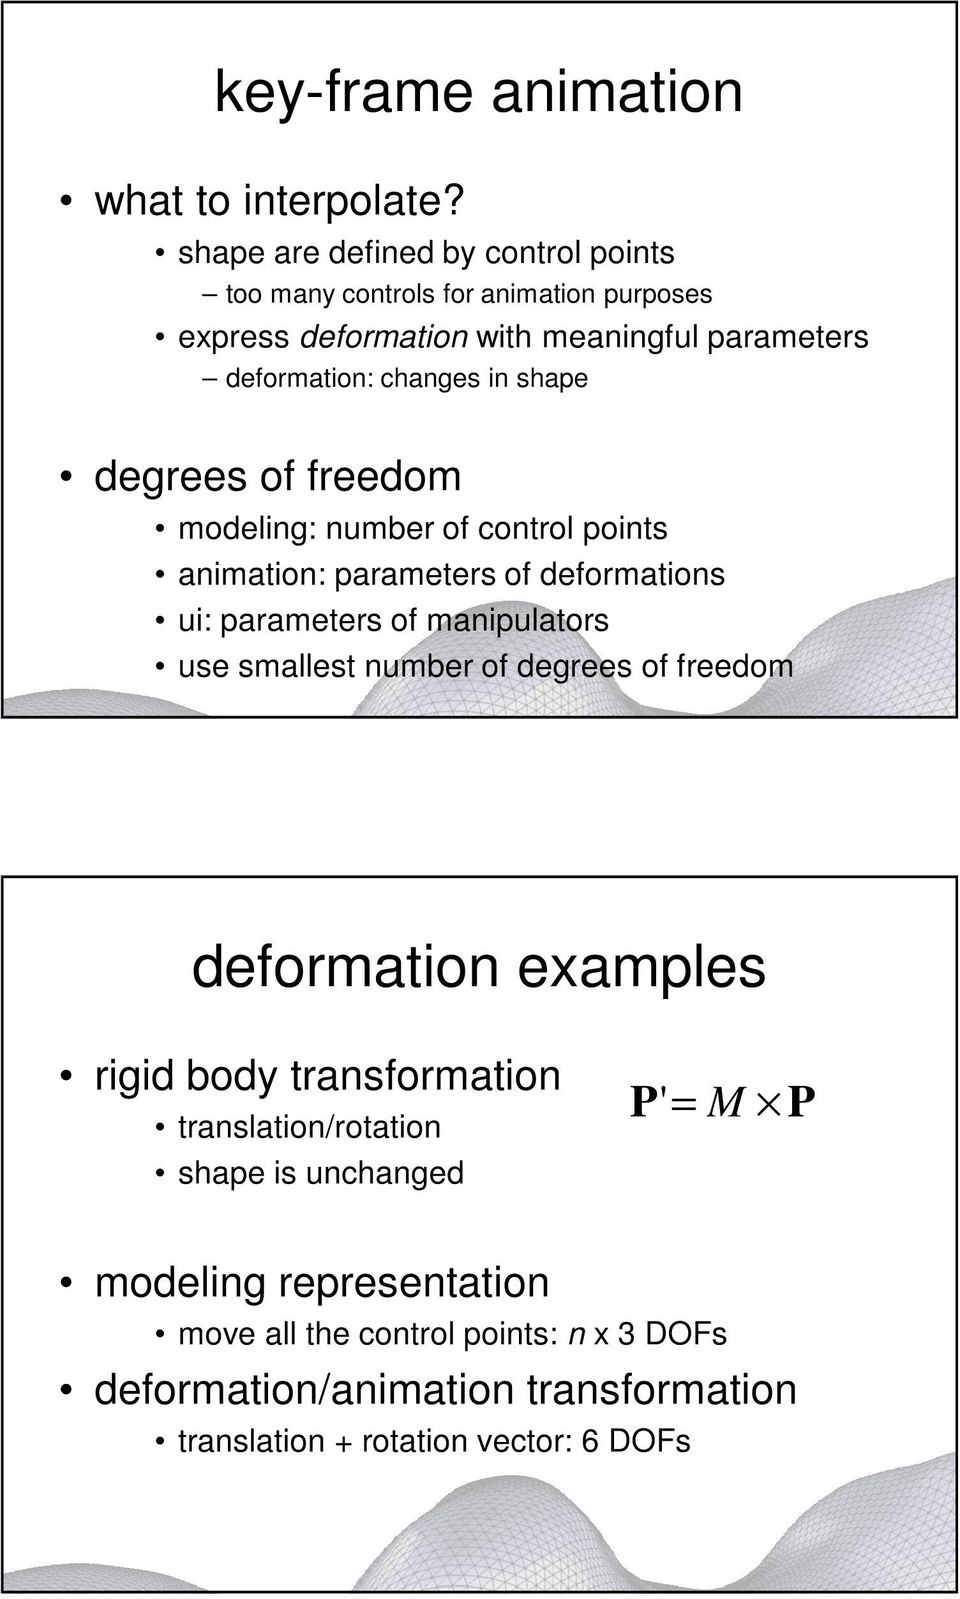 shape degrees of freedom modeling: number of control points animation: parameters of deformations ui: parameters of manipulators use smallest number